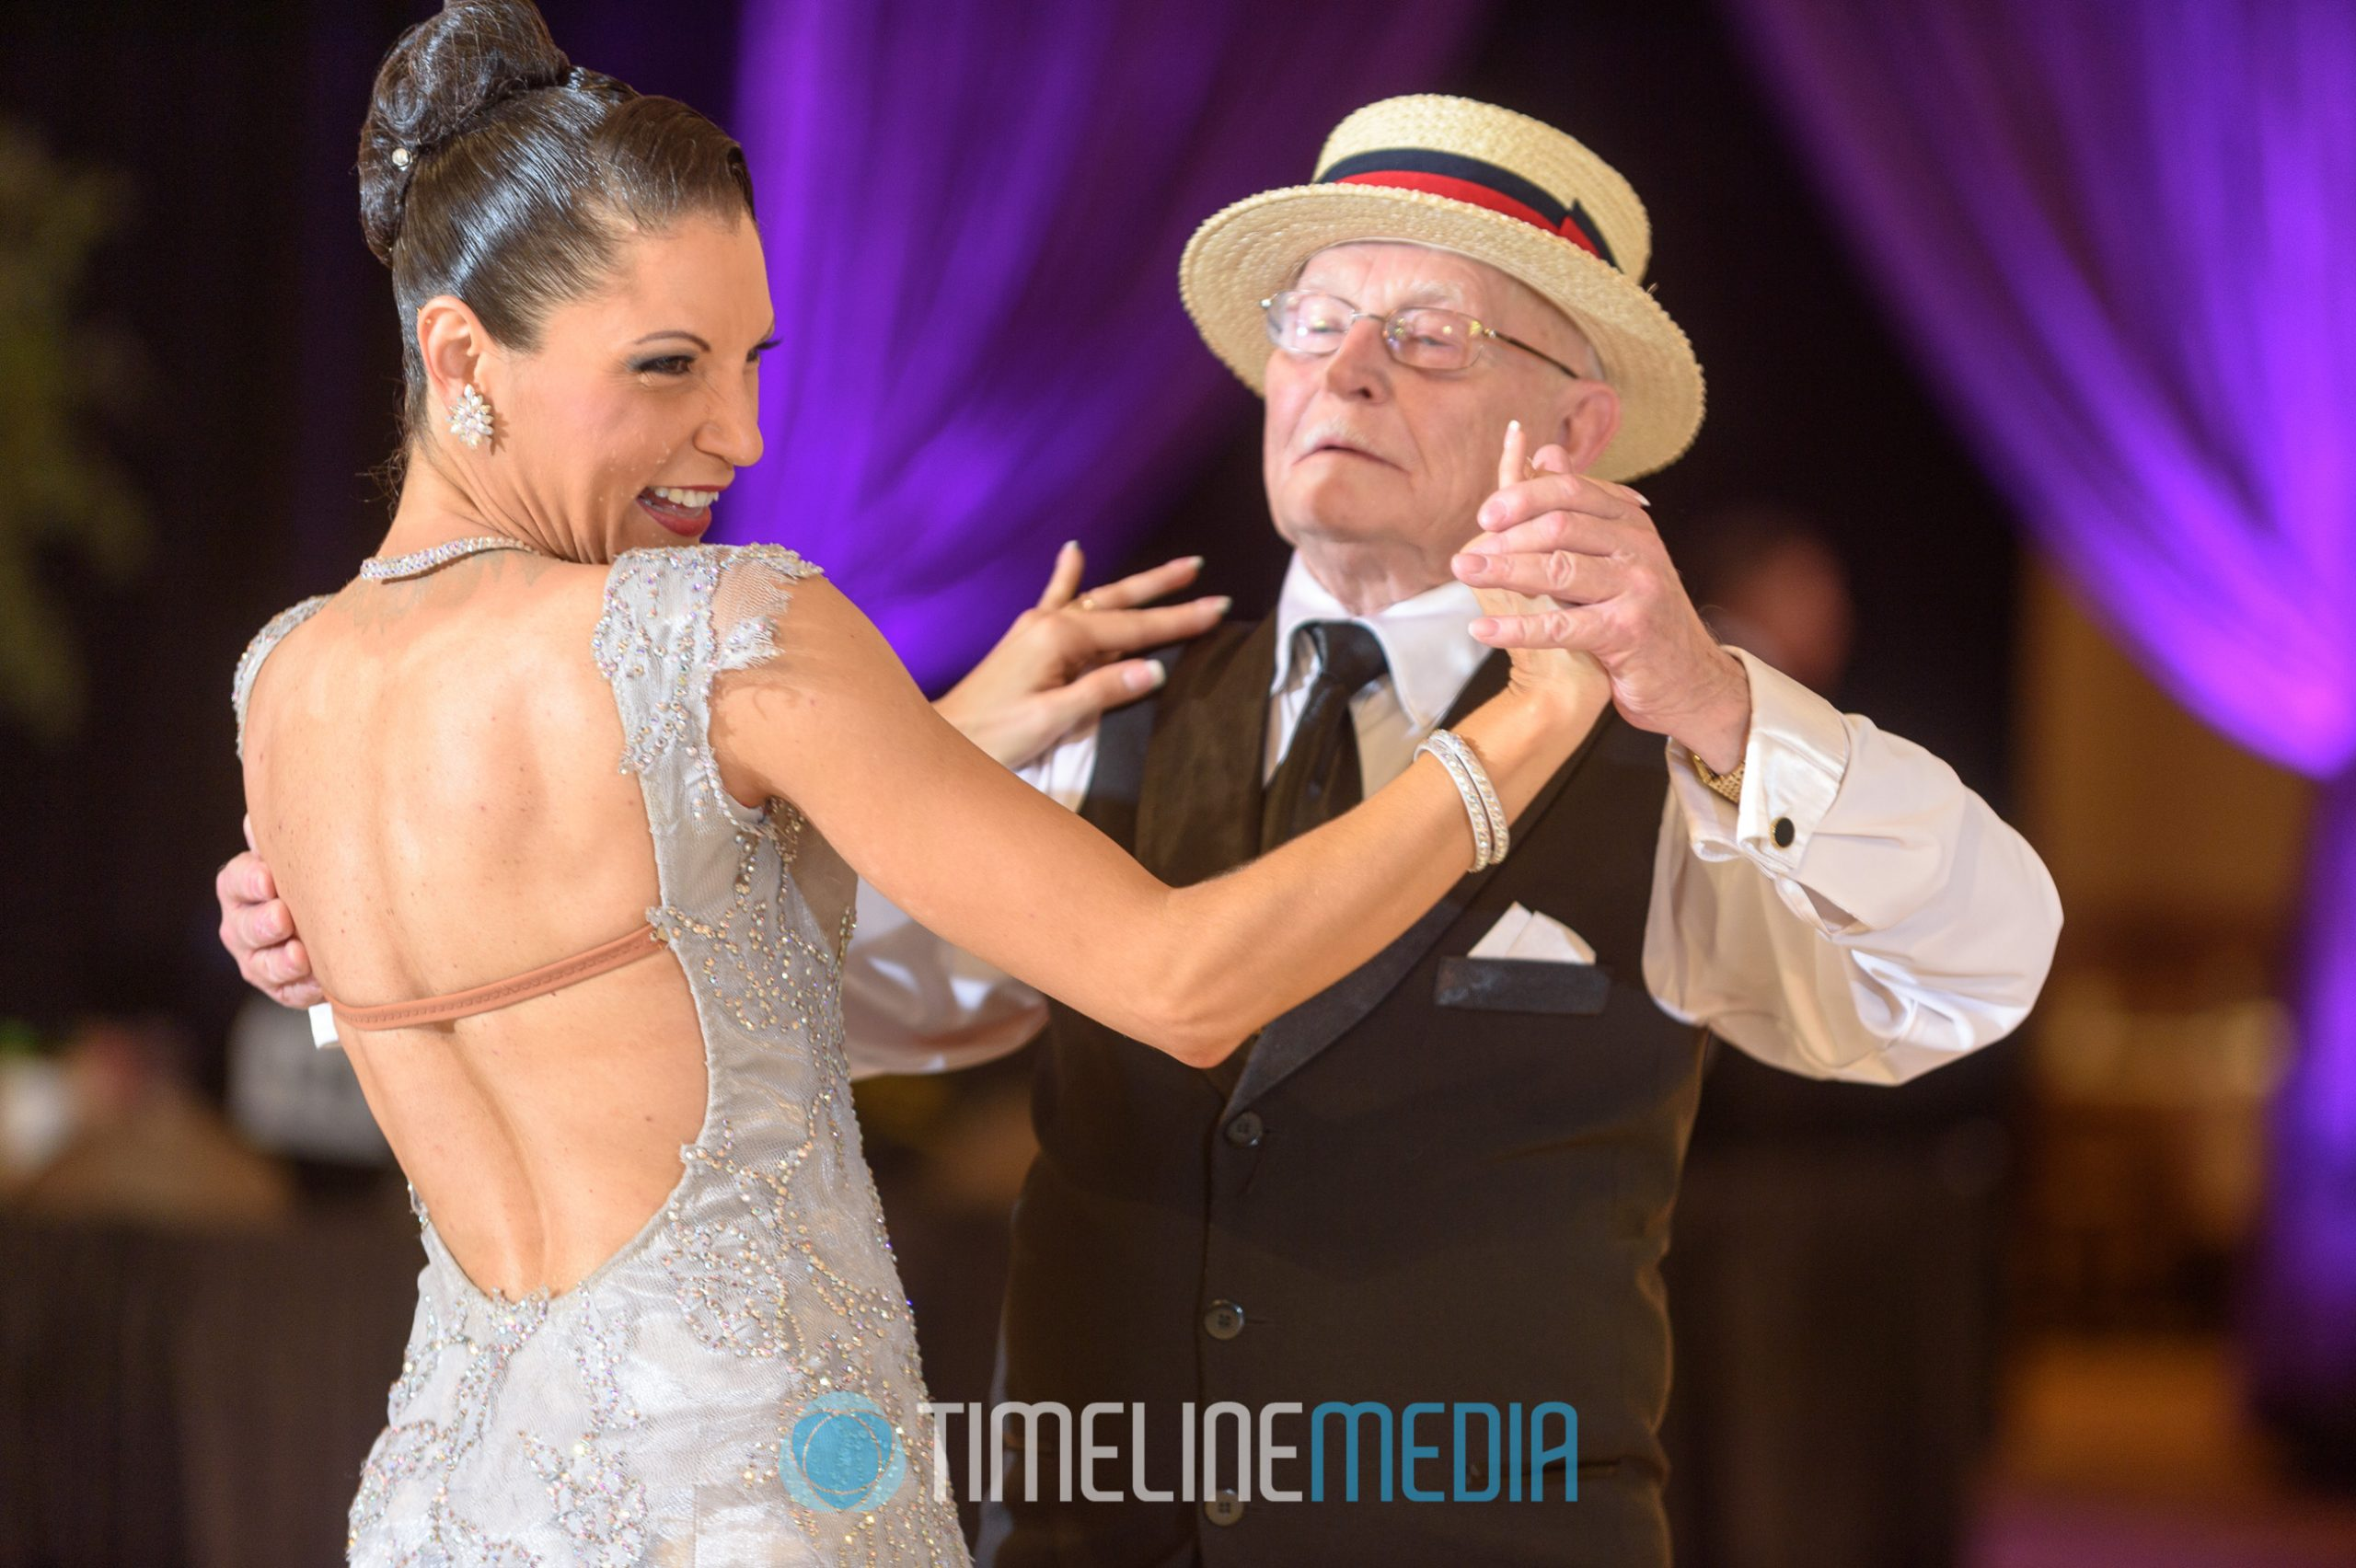 Pro Am dancing at New Jersey State Open ©TimeLine Media